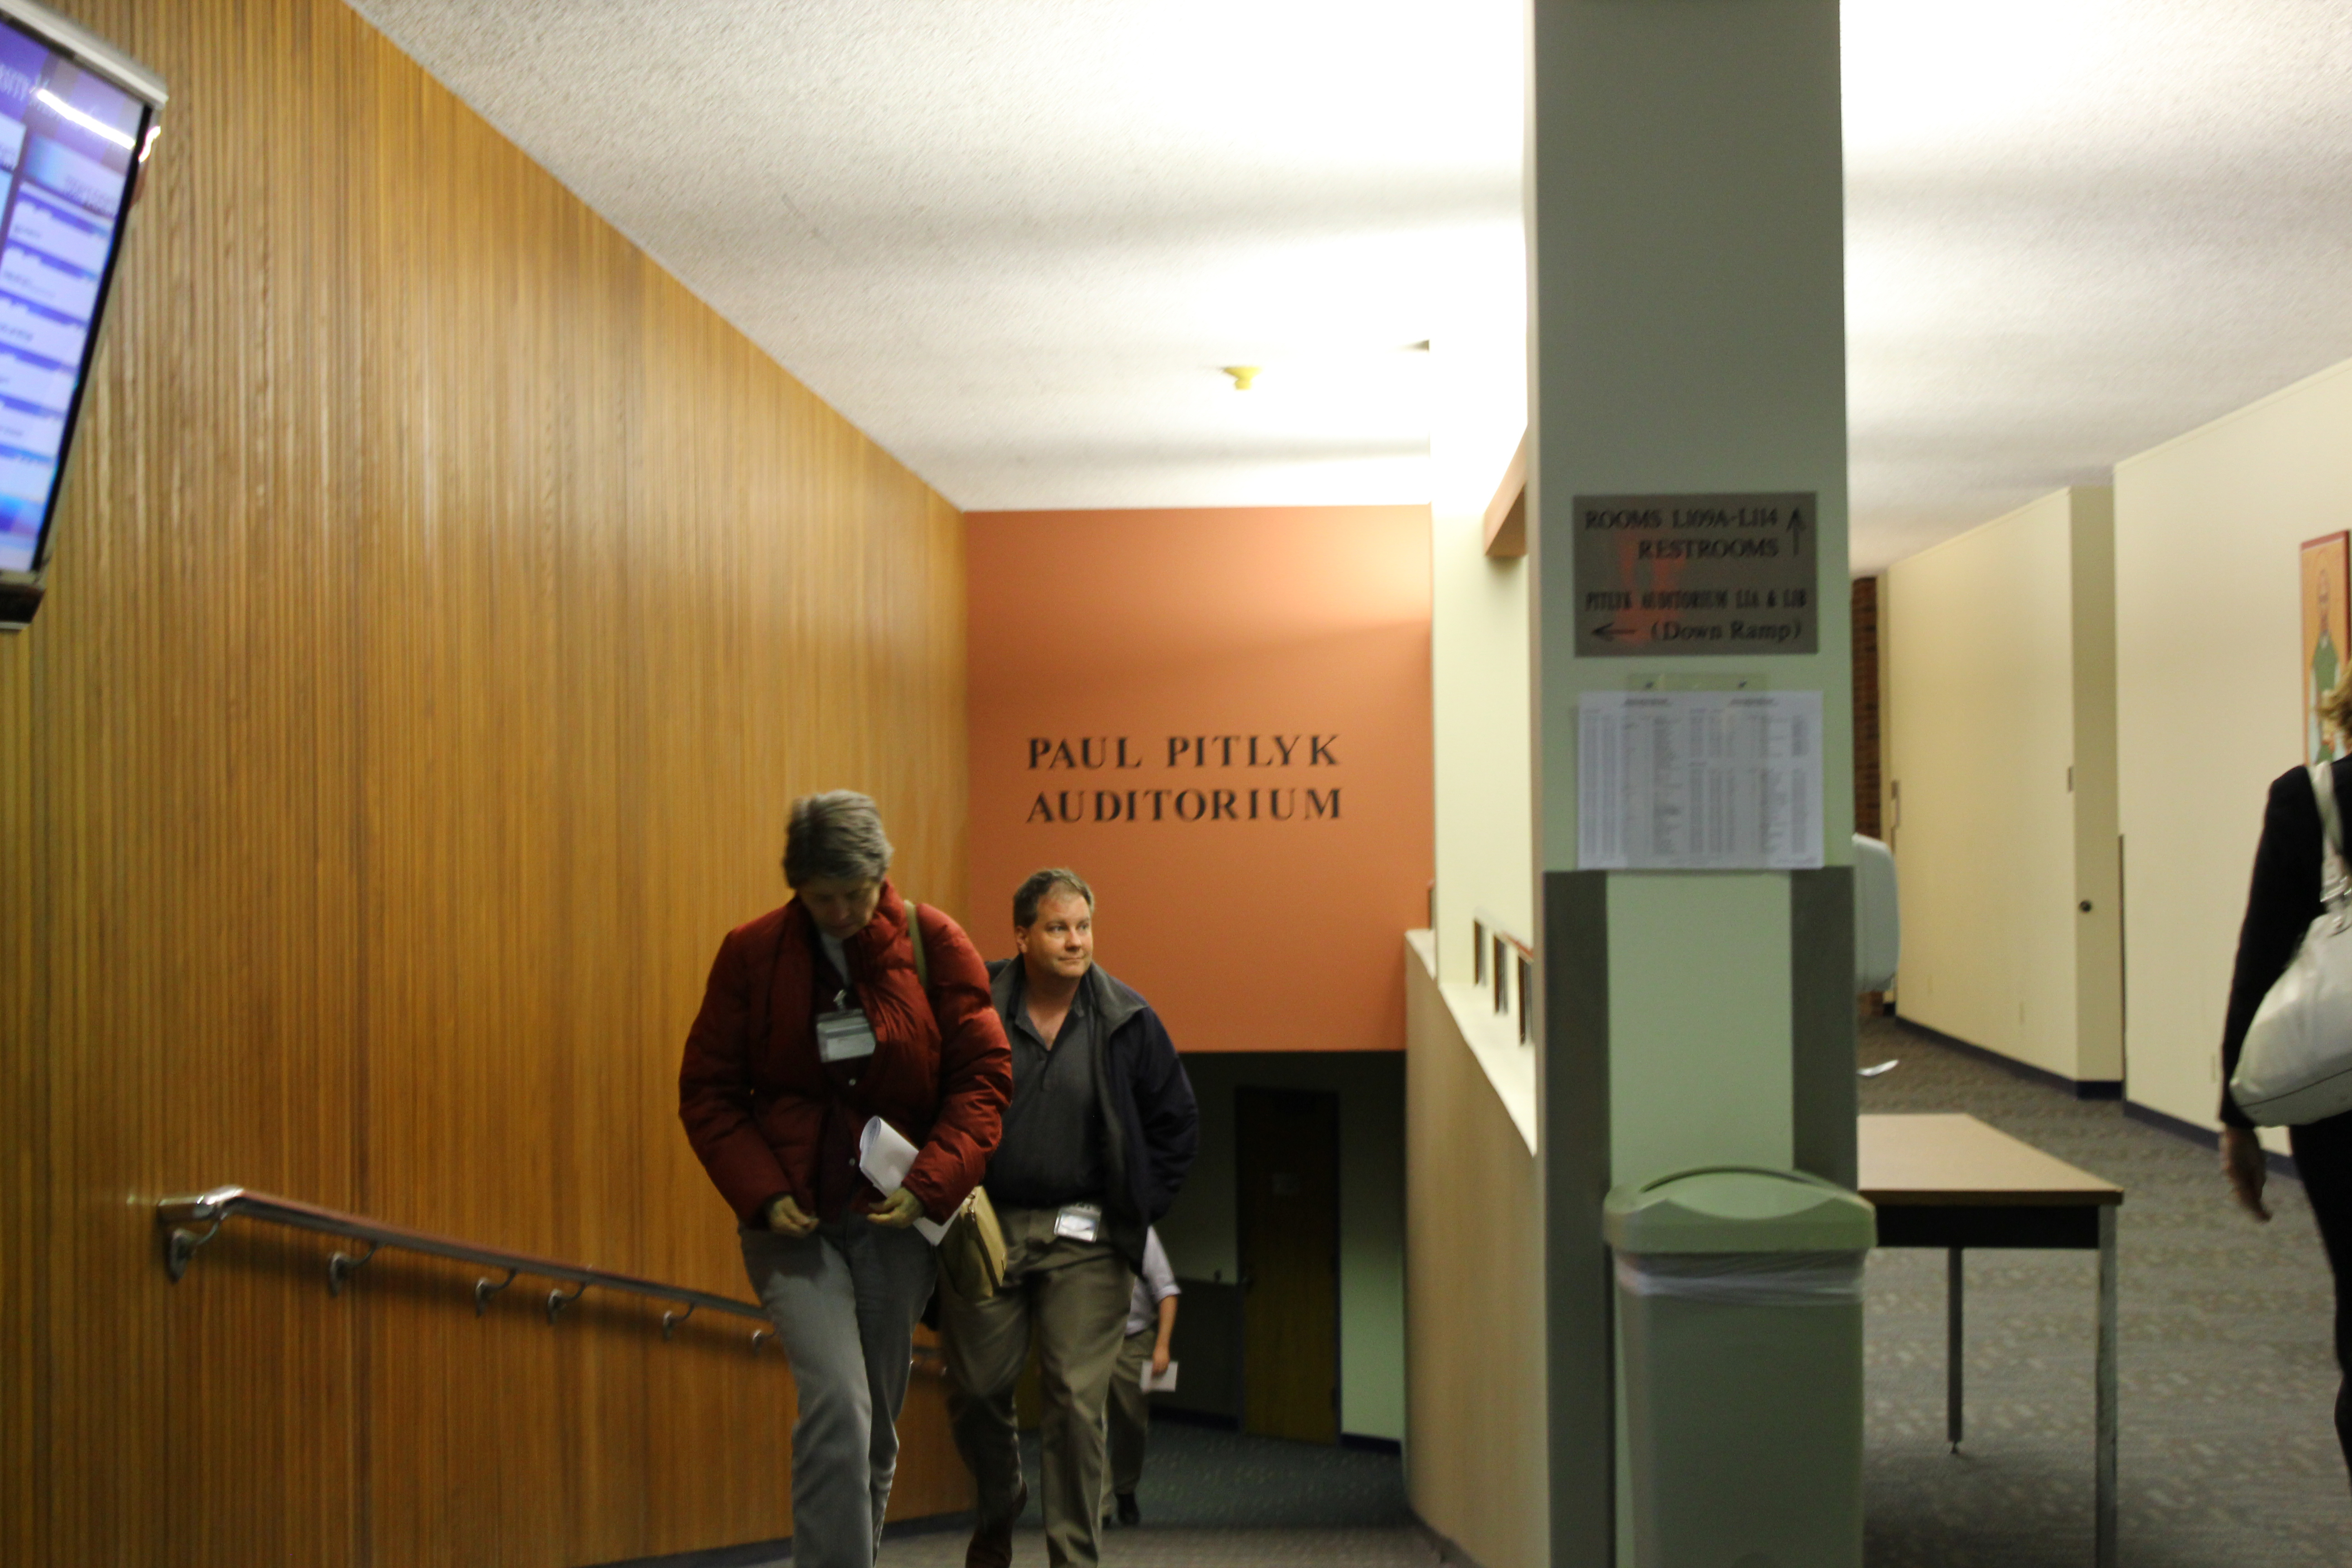 Kristen Miano/News Editor Attendants of the Faculty Senate Meeting on Tuesday Nov. 13 exit the Pitlyk Auditorium.